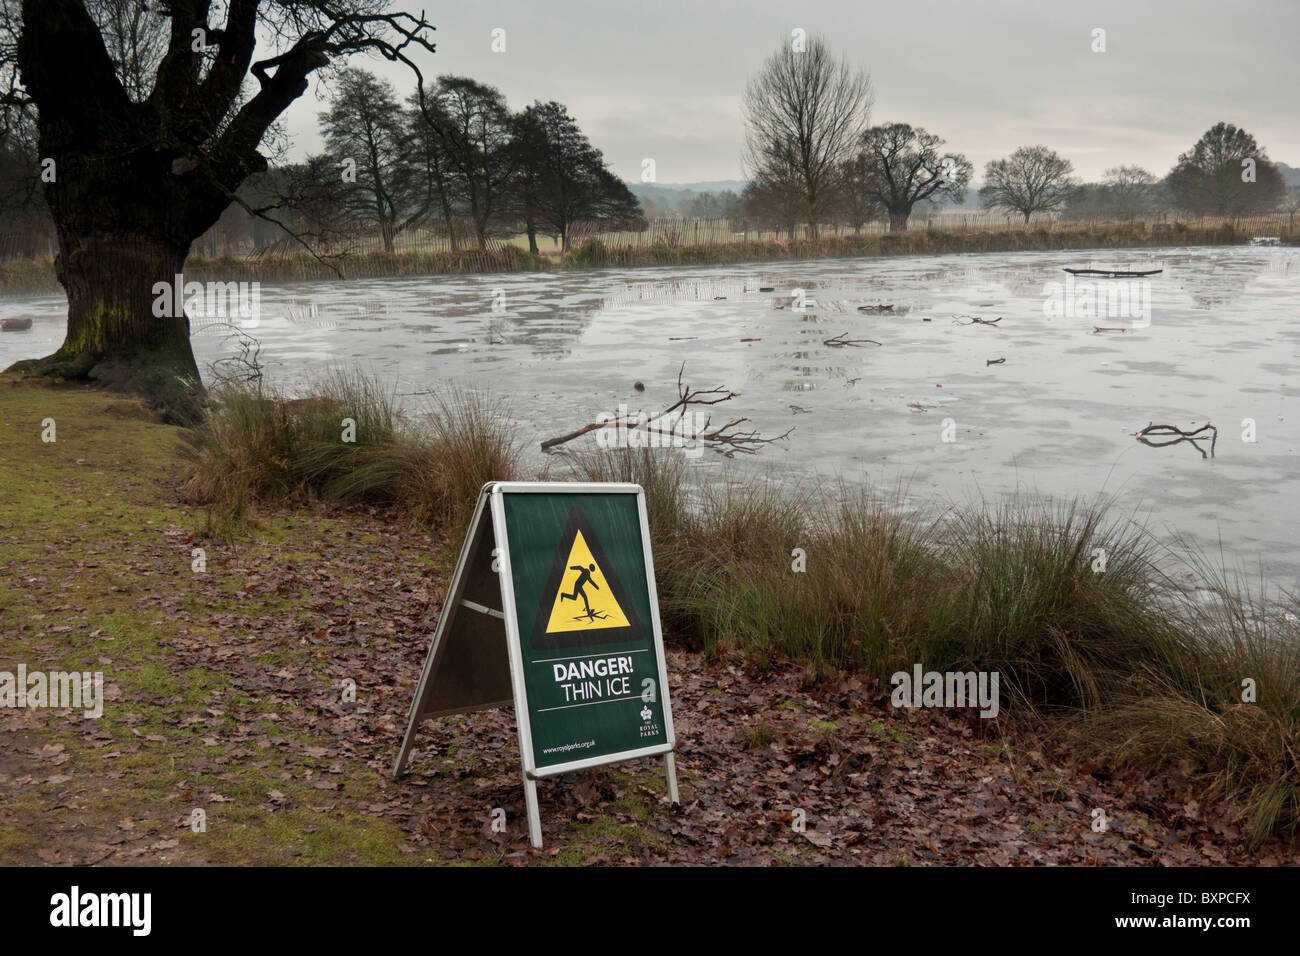 Danger, thin ice sign - Stock Image